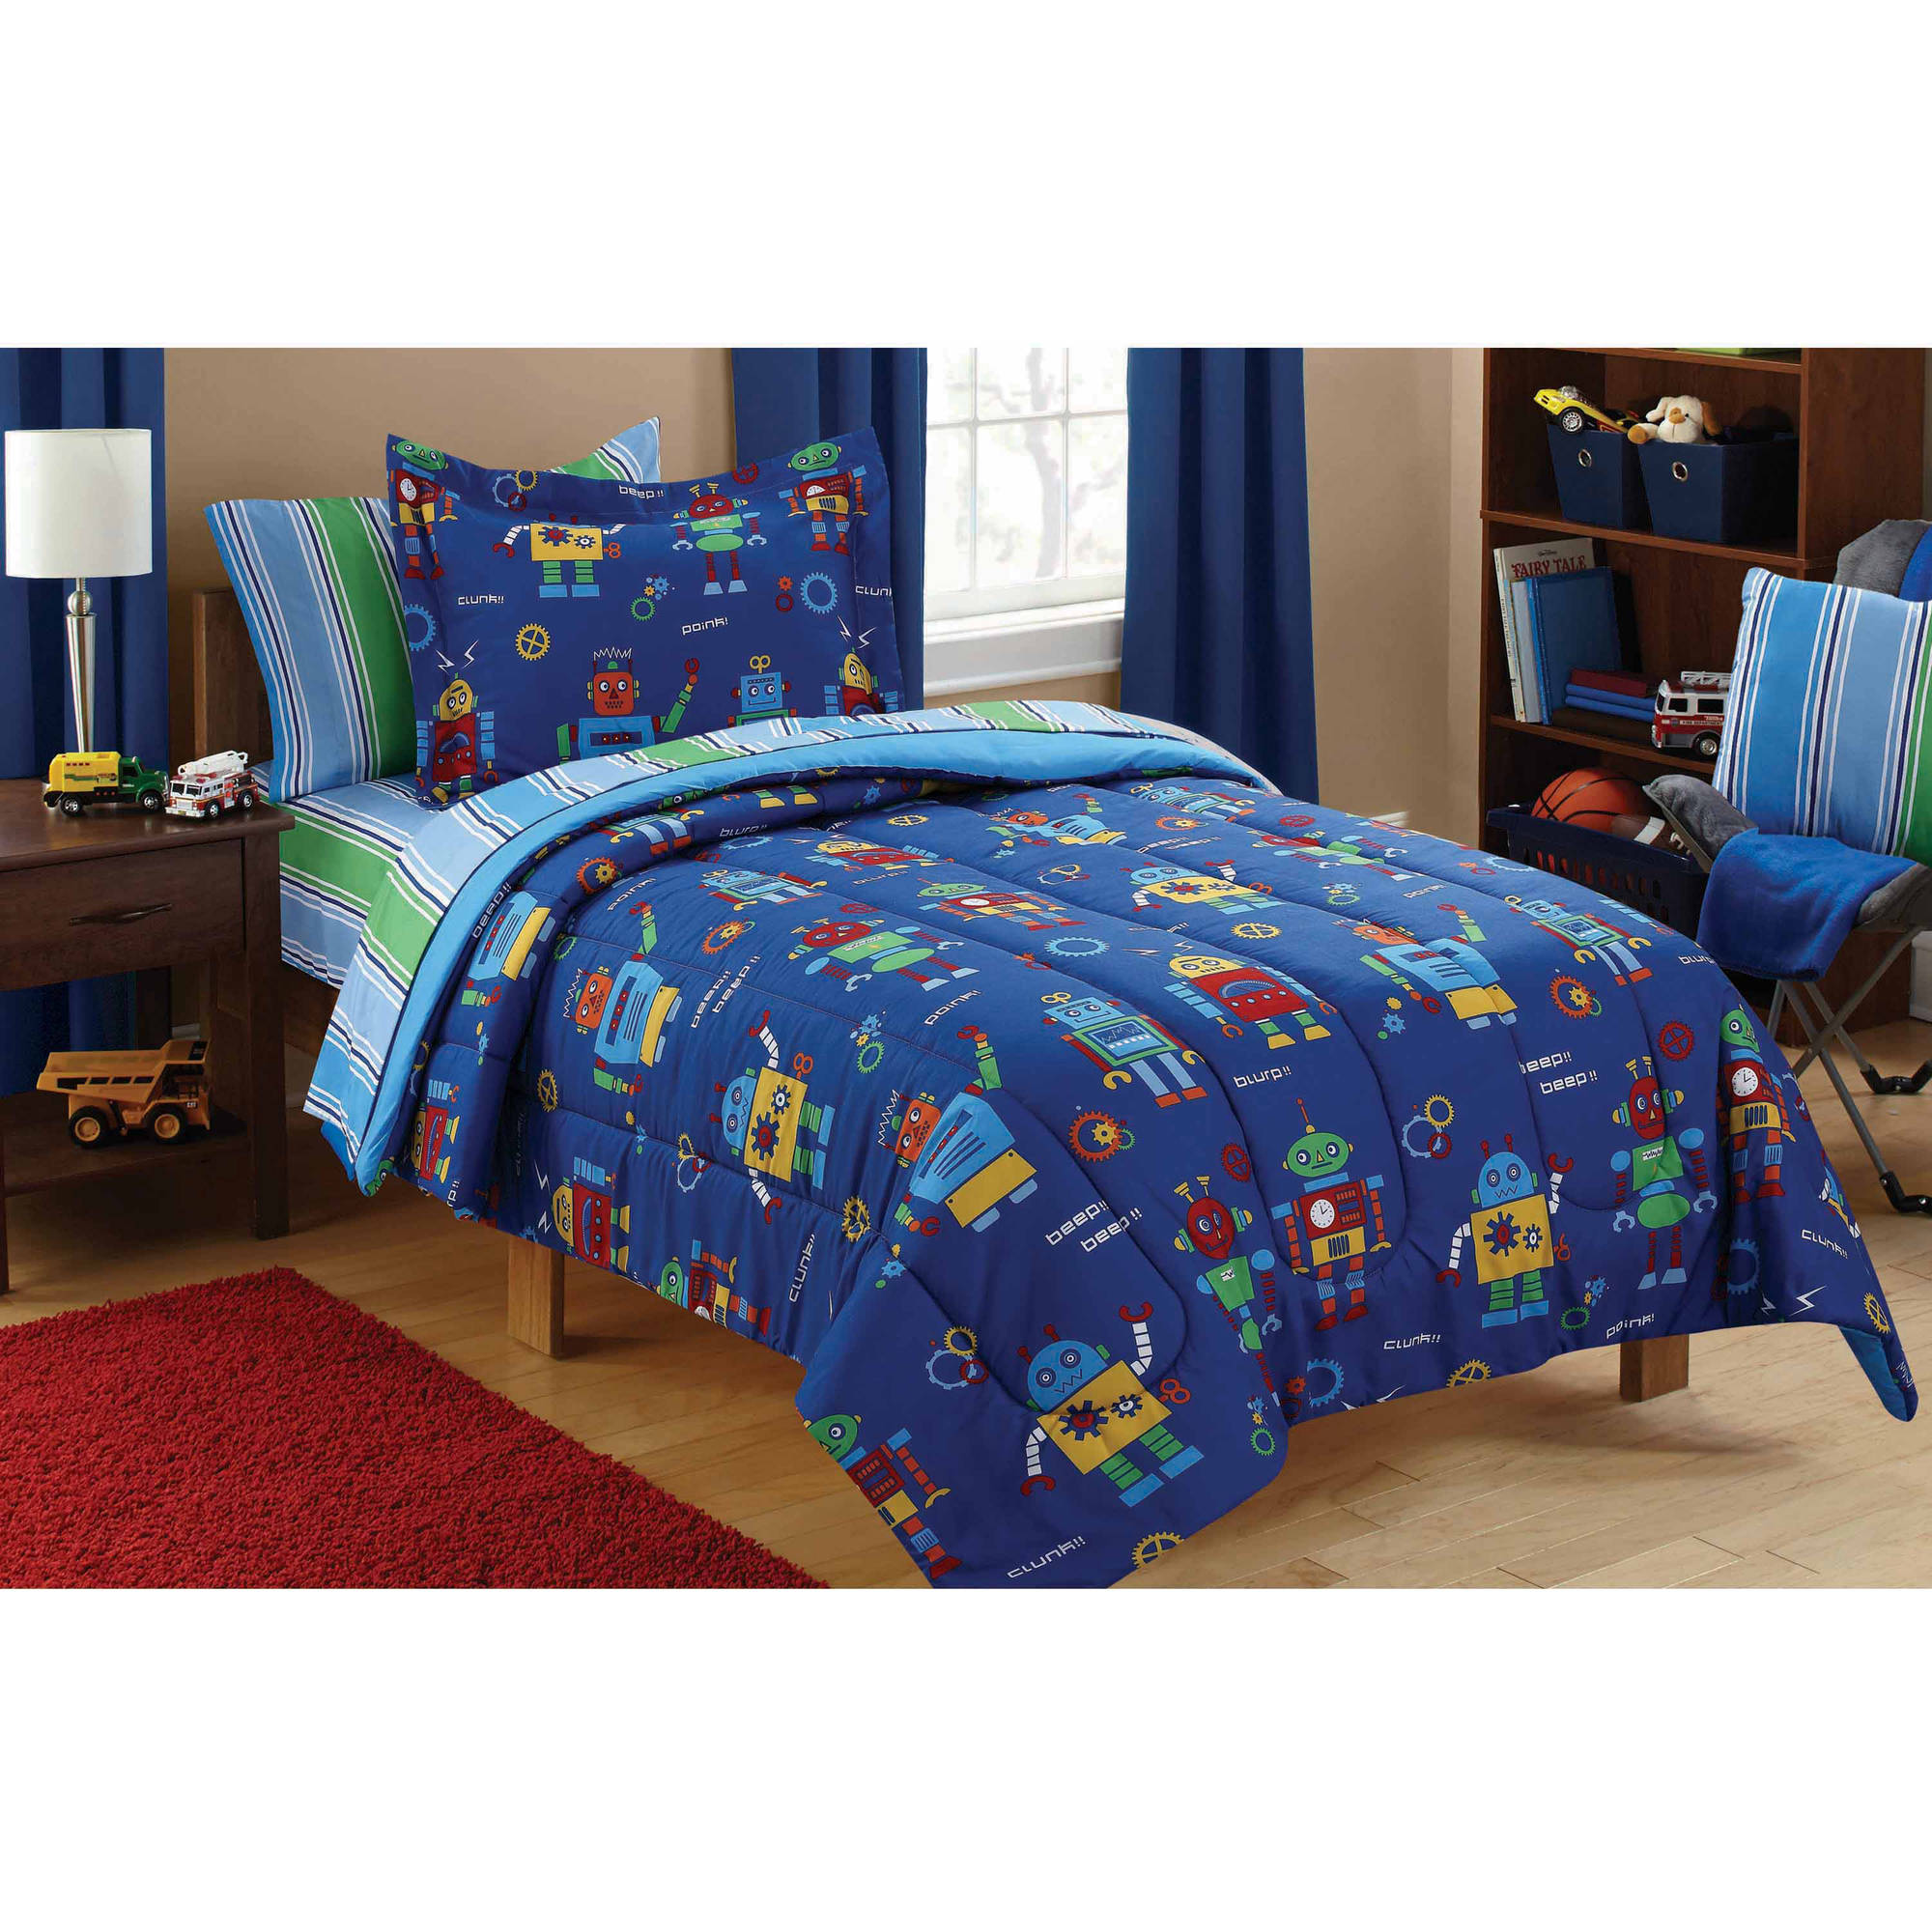 Mainstays Kids Robots Bed in a Bag Coordinating Bedding Set